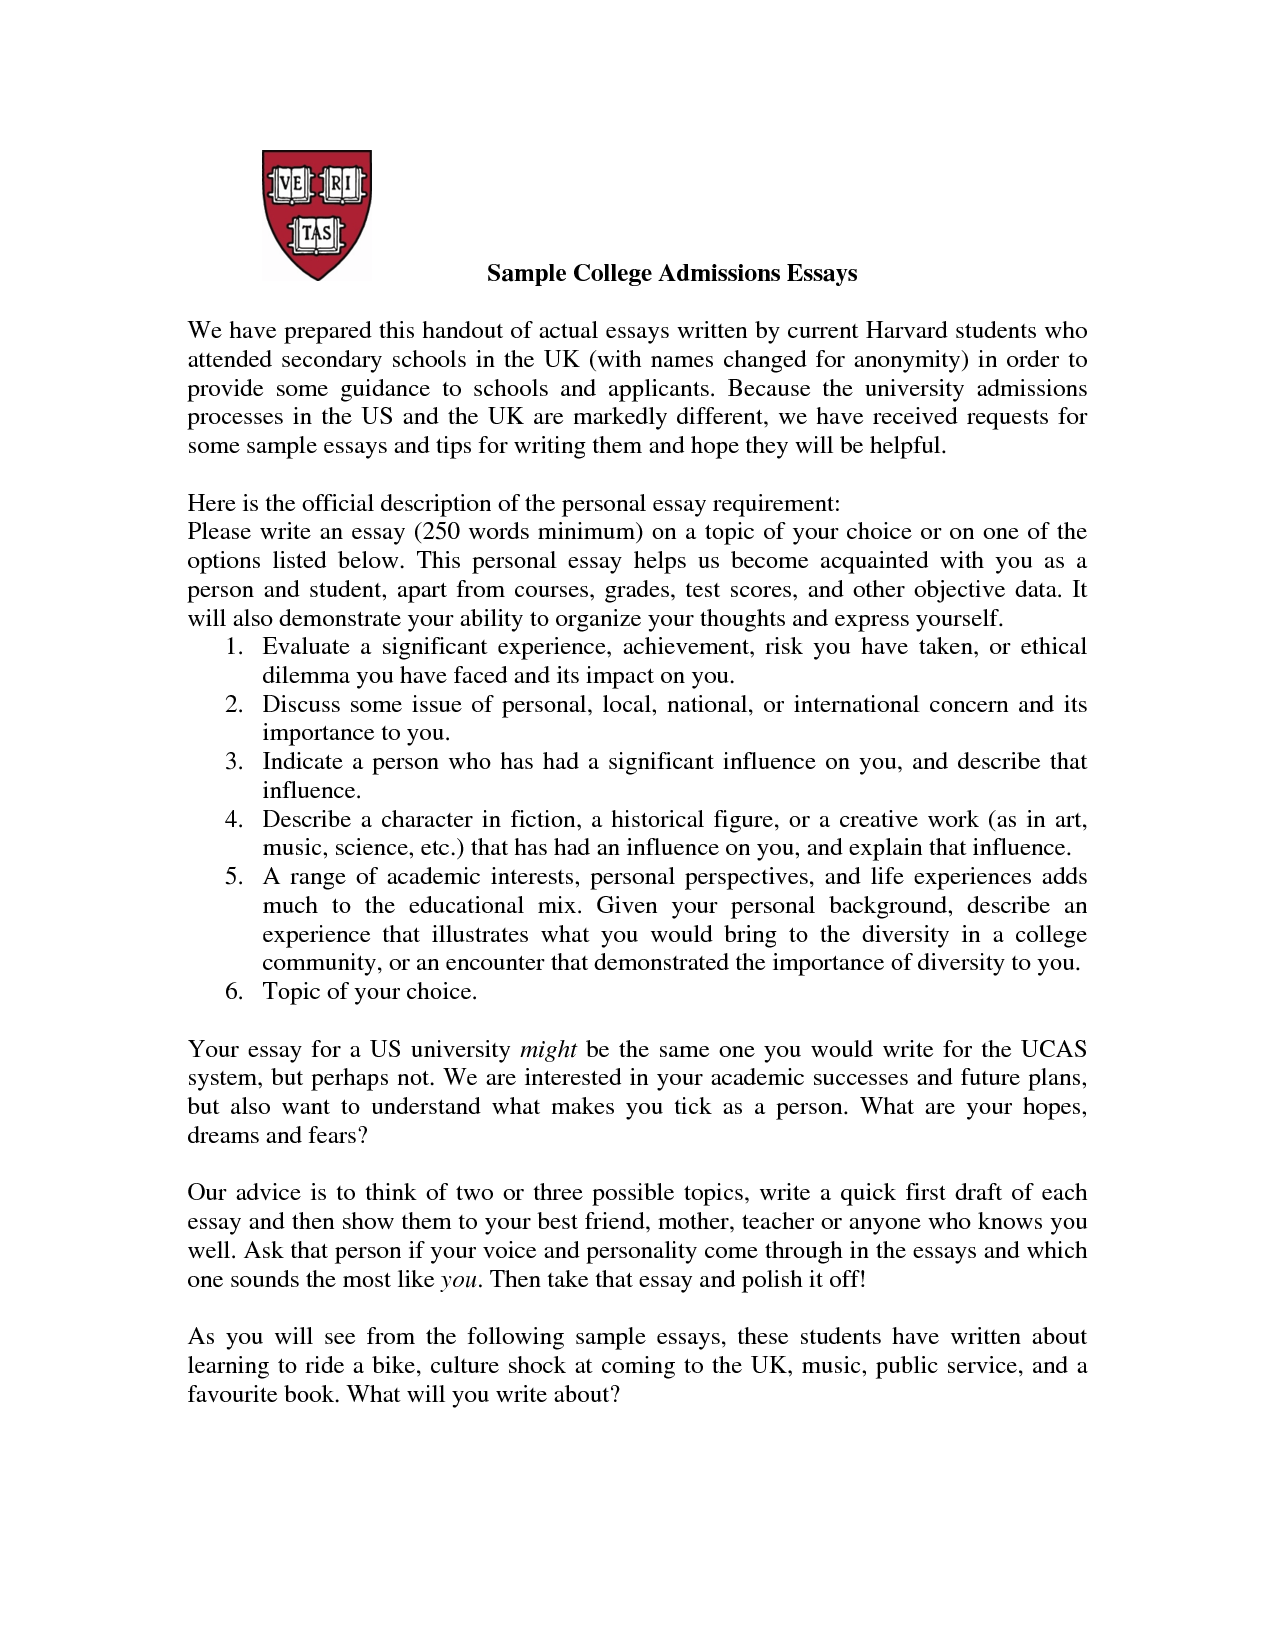 025 Essay Example College Heading What To Write Application About Incredible Admissions Format Papers Full